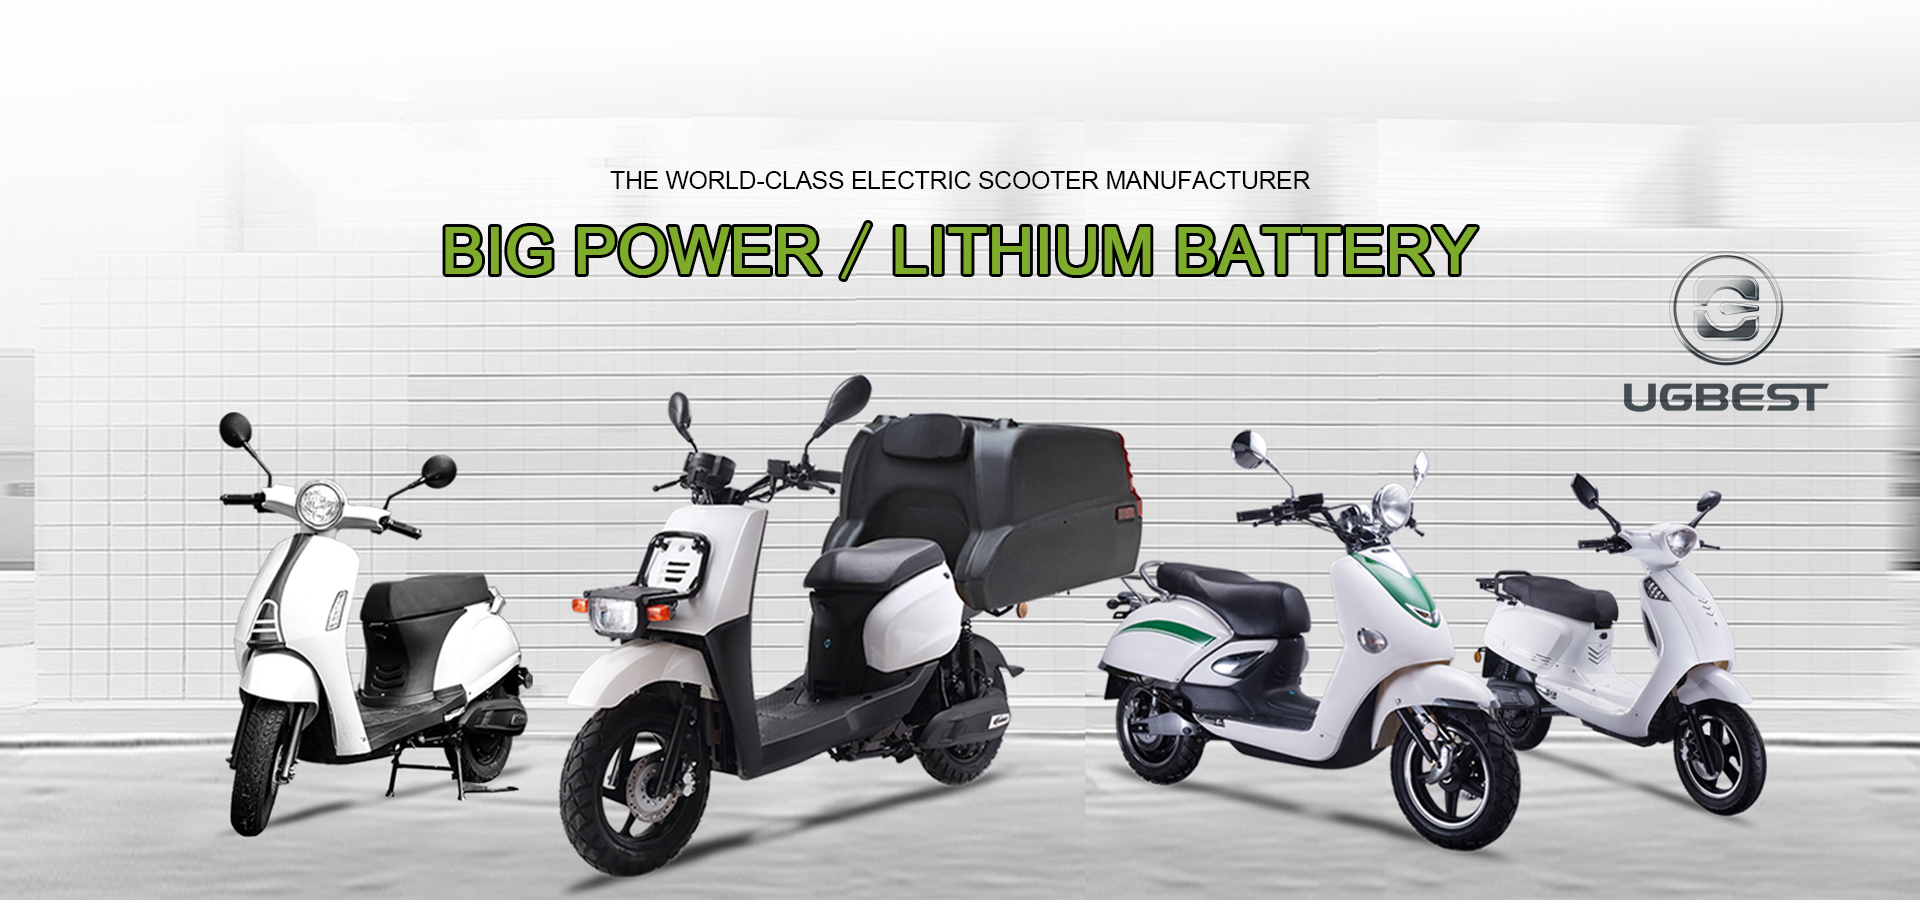 UGBEST BIG POWER LONG RANGE 3000W ADULT ELECTRIC SCOOTER